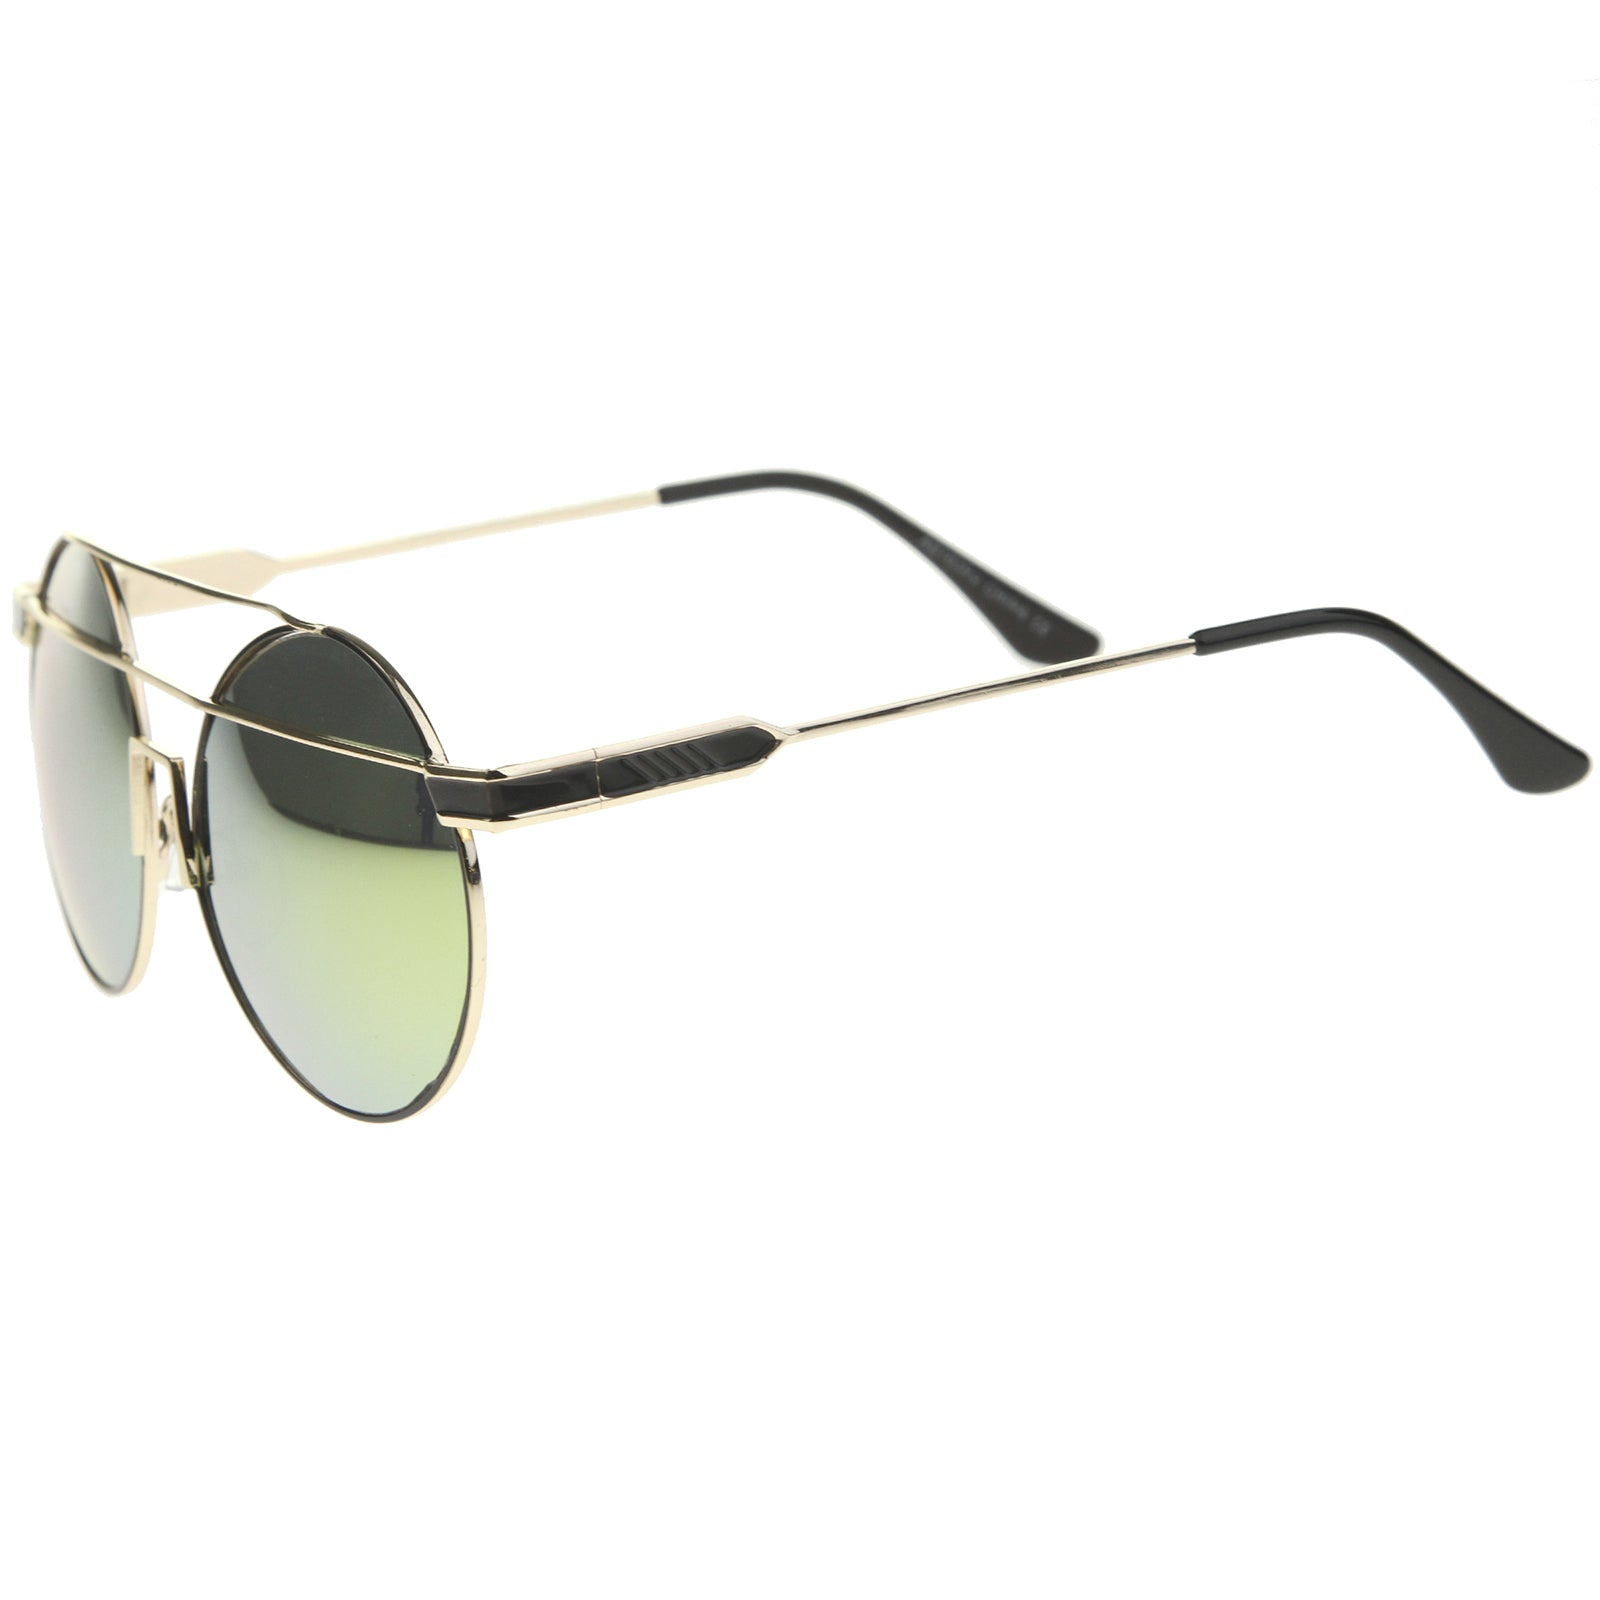 Modern Metal Frame Double Bridge Colored Mirror Lens Round Sunglasses 59mm - sunglass.la - 11